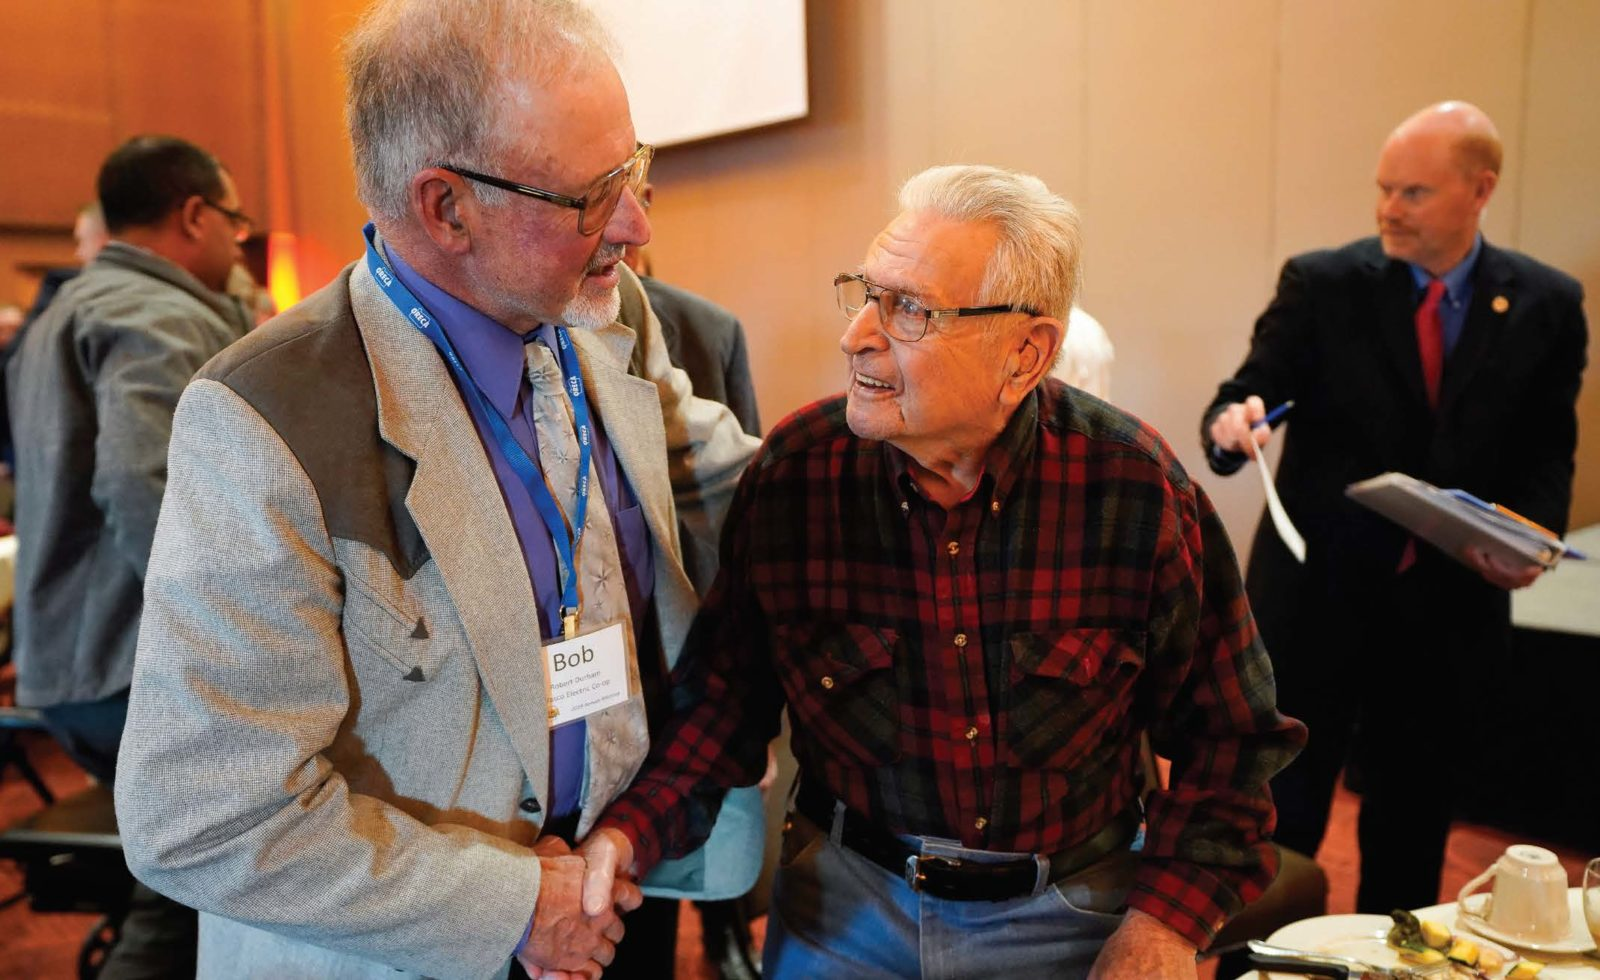 New Oregon Rural Electric Cooperative Association President Bob Durham, left, thanks Ben Asquith of Dayton, Oregon, for his service on D-Day. Asquith was an honored guest at ORECA's annual meeting in November